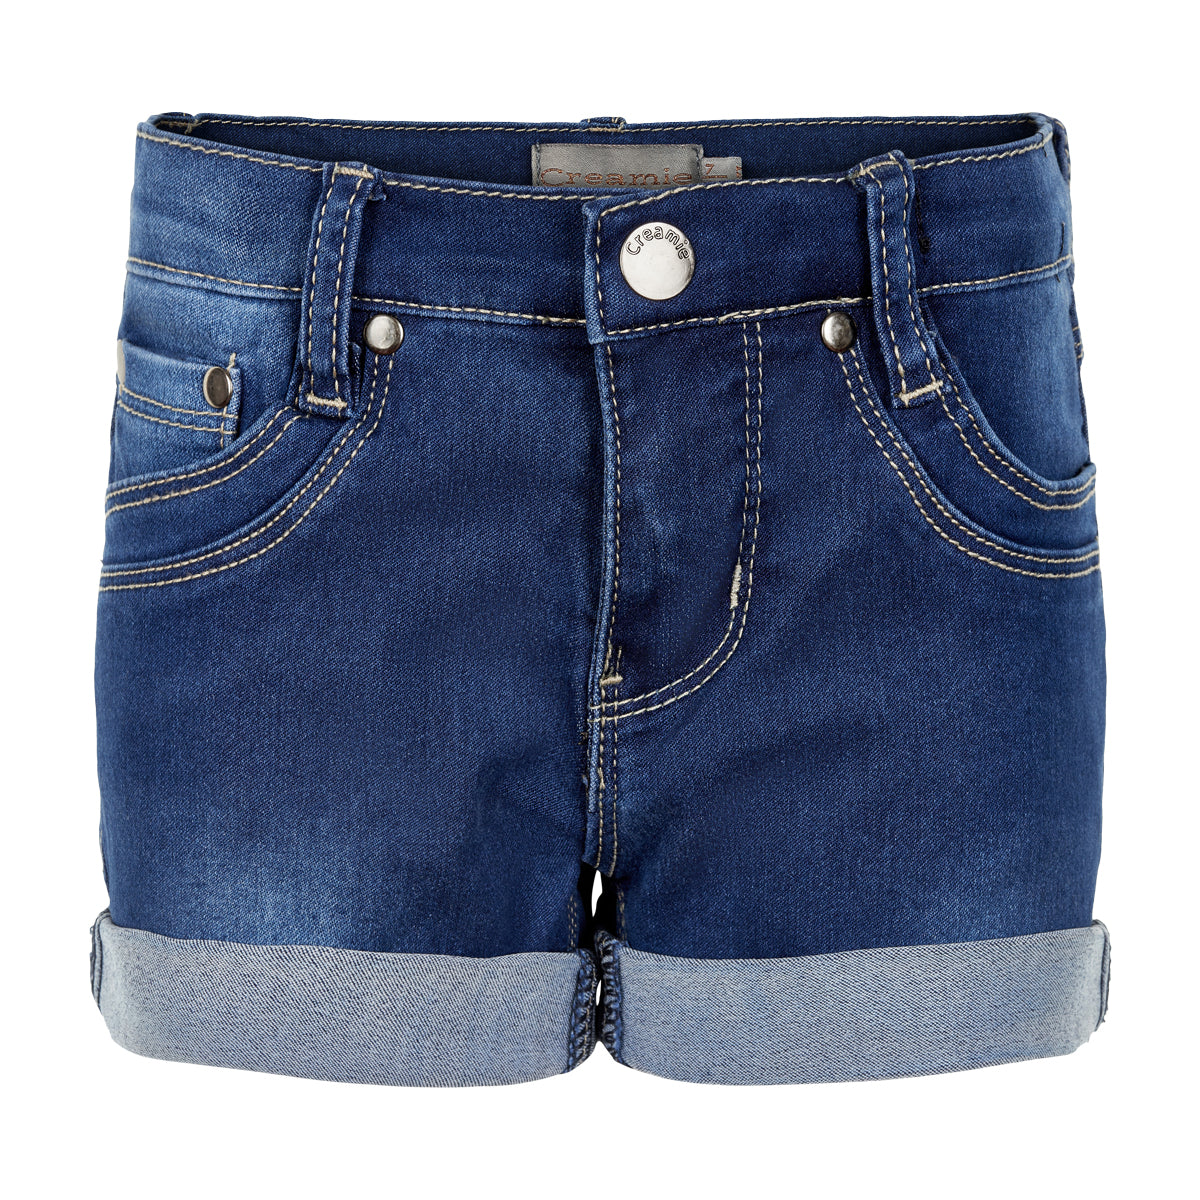 Image of   Creamie - Etna Shorts (820716) - Blue Denim